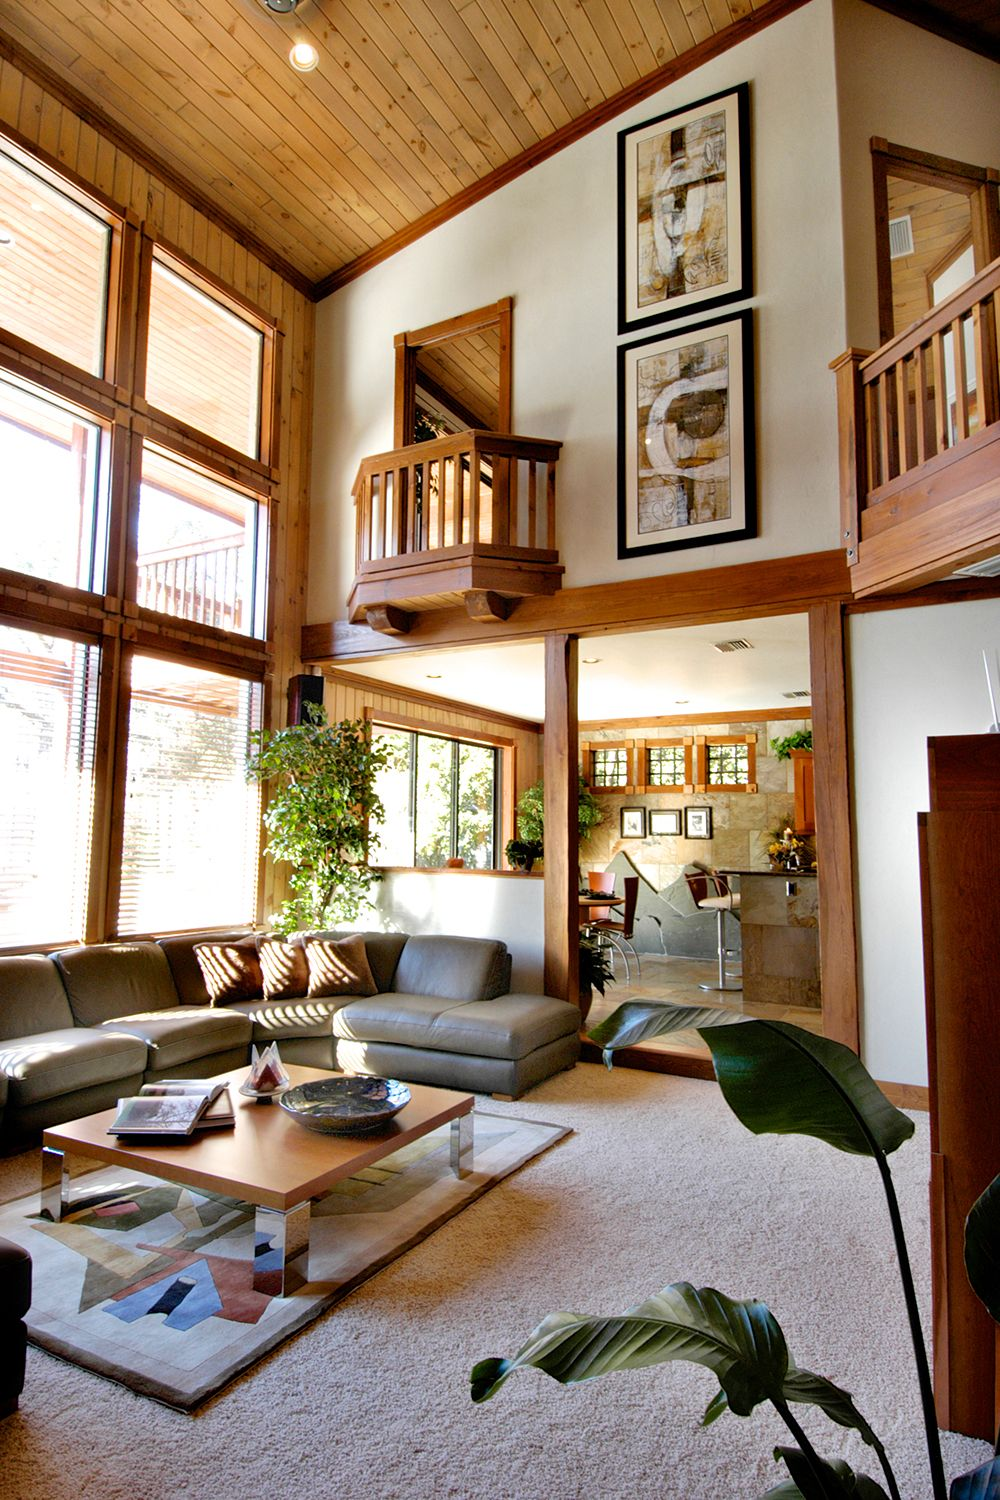 Image of: 32 Wood Ceiling Designs Ideas For Wood Plank Ceilings